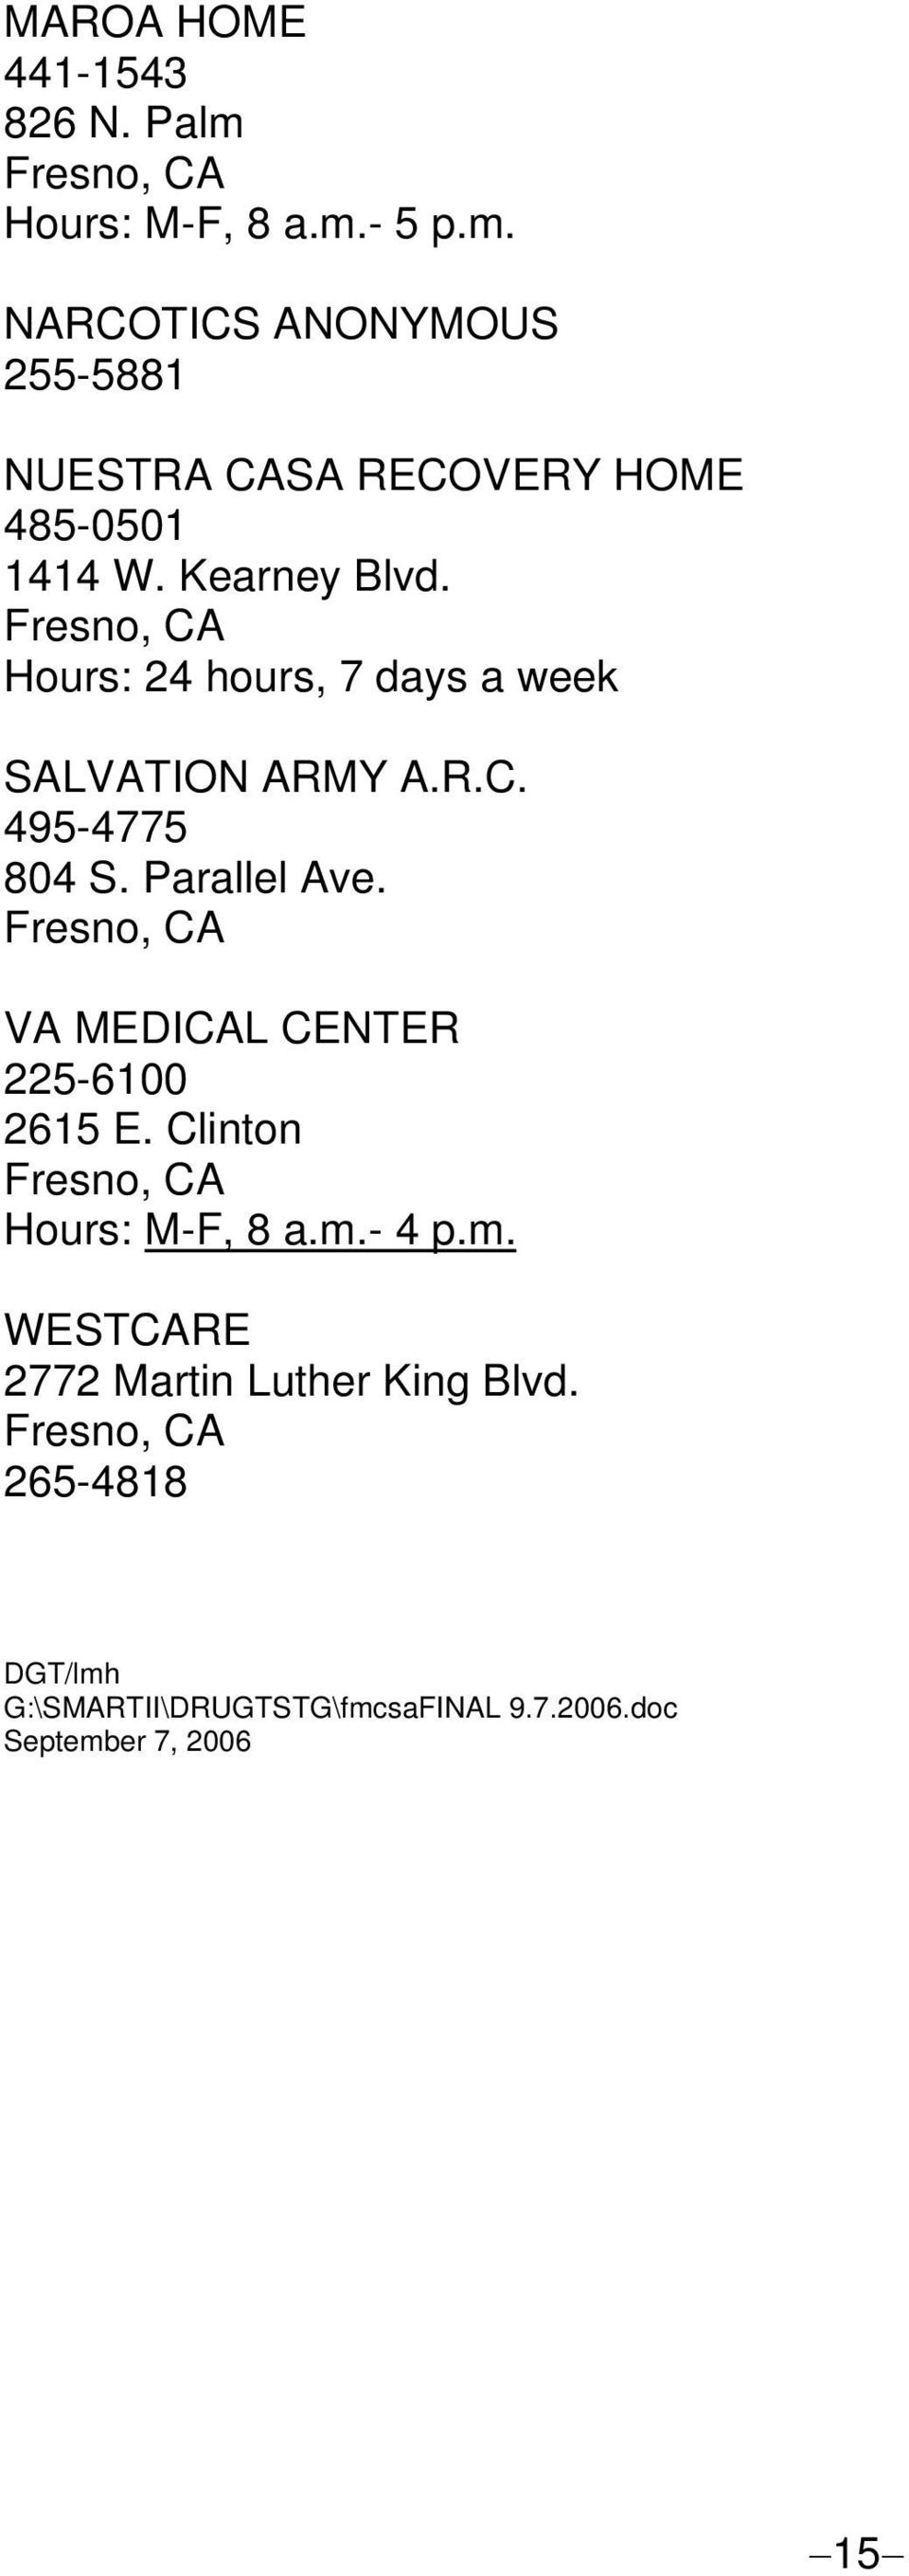 VA MEDICAL CENTER 225-6100 2615 E. Clinton Hours: M-F, 8 a.m.- 4 p.m. WESTCARE 2772 Martin Luther King Blvd.